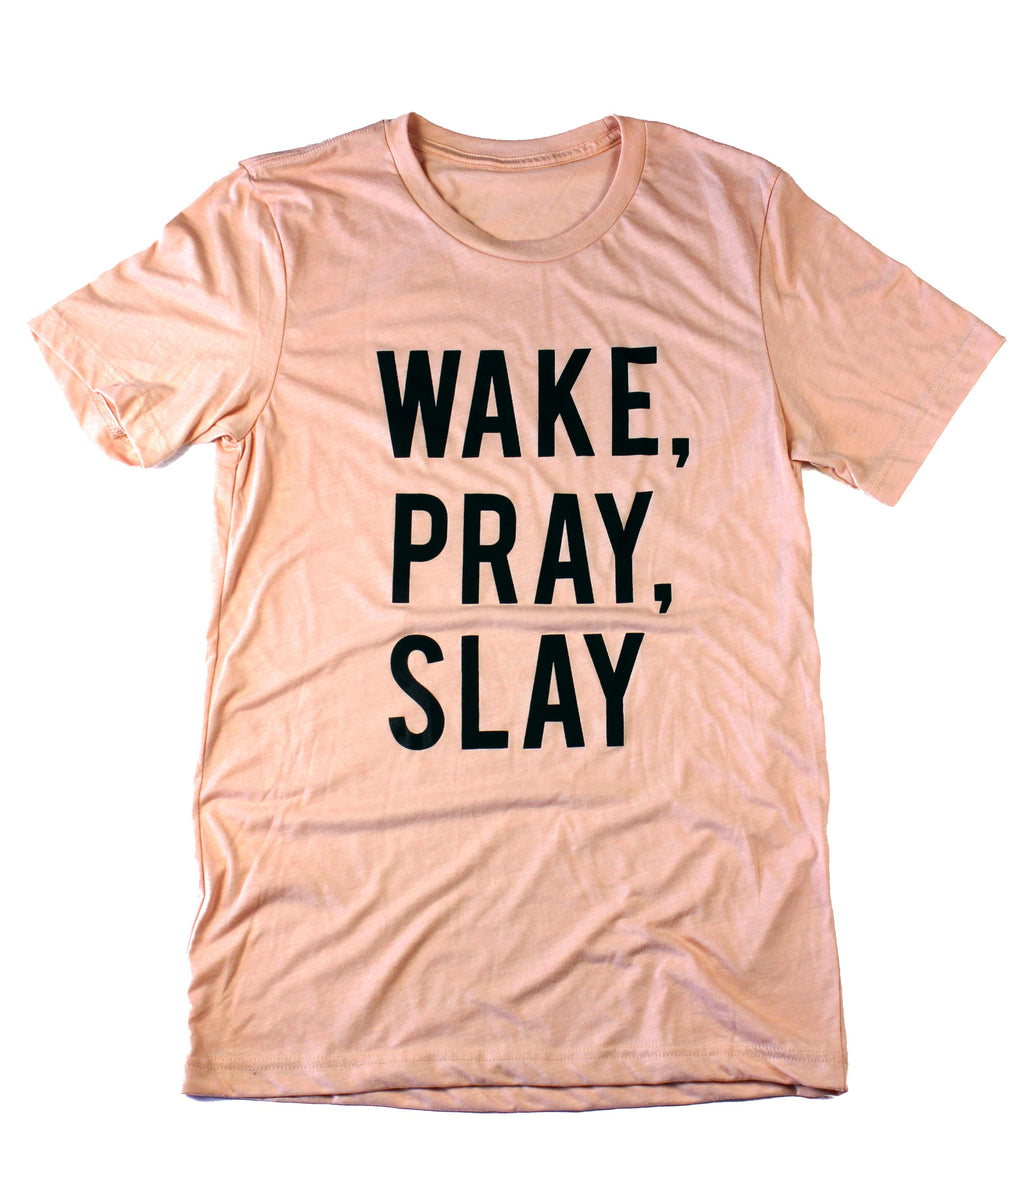 WAKE, PRAY, SLAY PEACH T-SHIRT